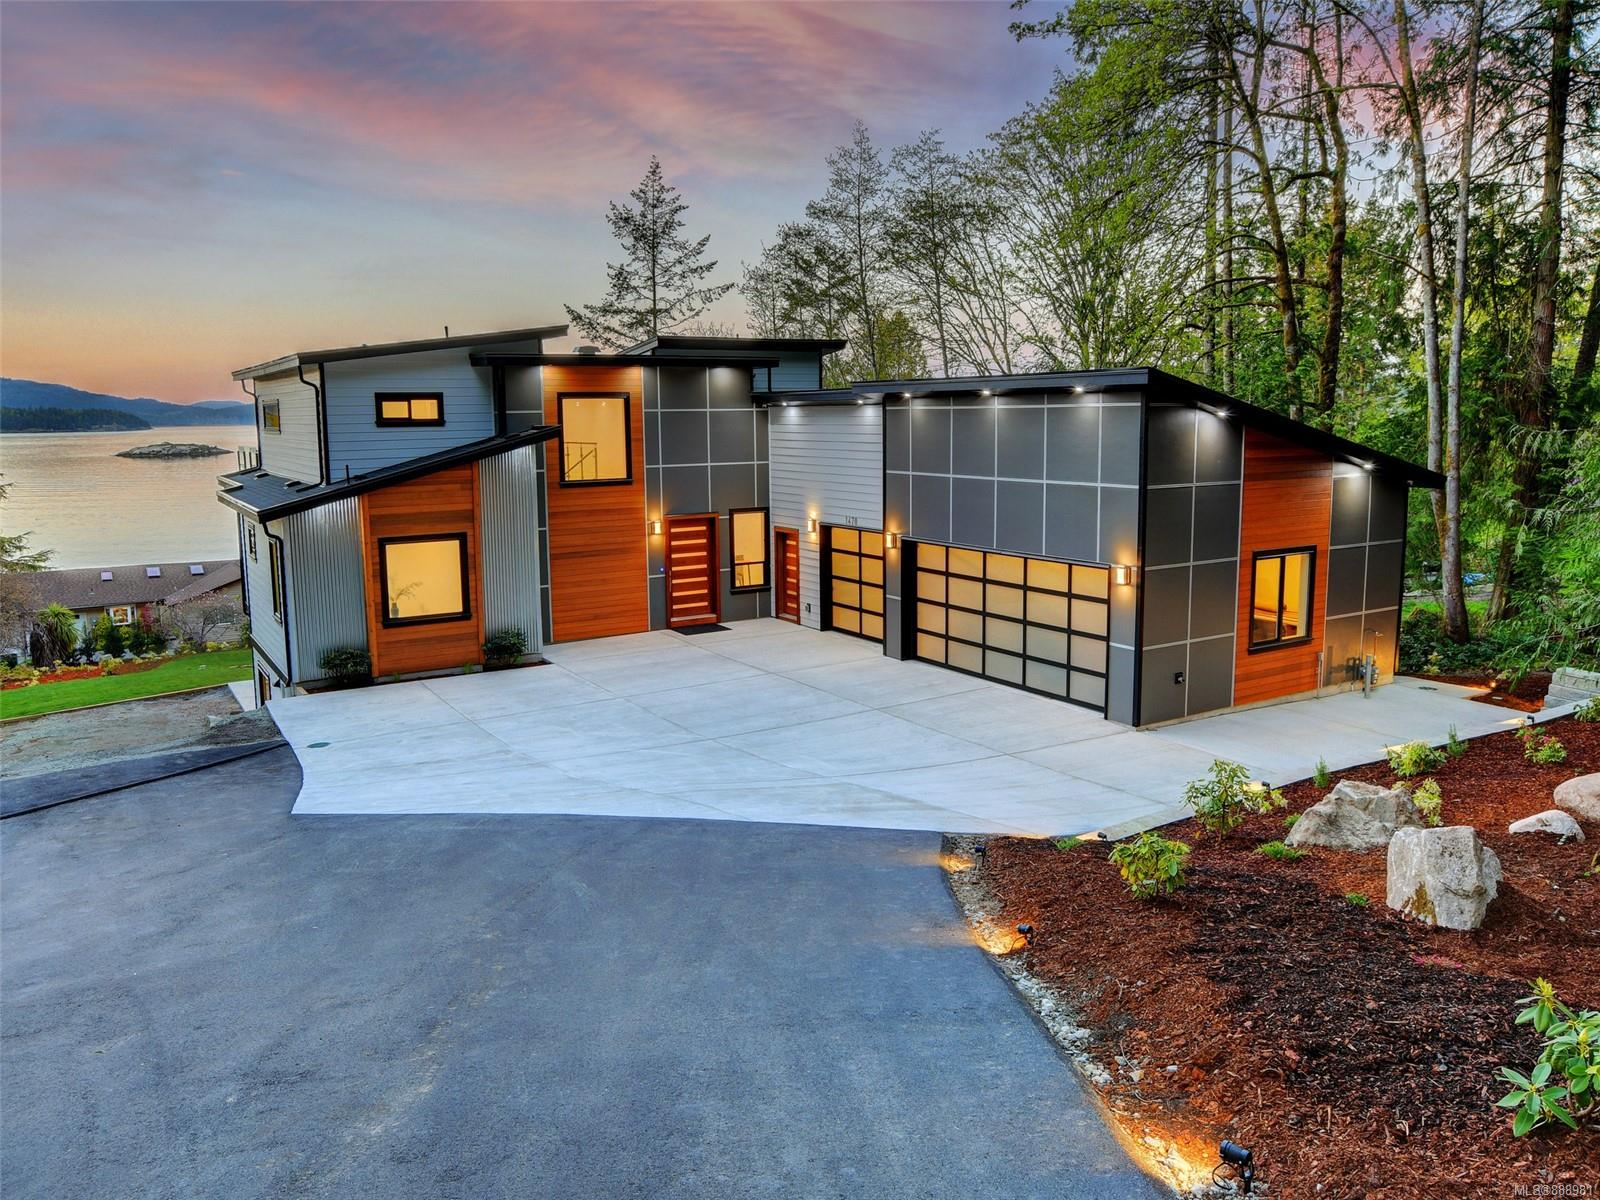 """Ocean and mountain views from all principal rooms. This new build offers over 4,900 square feet of modern-day living with EnerGuide rating of 69GJ/year.  The home has many great design features including in-floor radiant heat with 1.5"""" concrete(makes it sound proof to lower floor) throughout the main floor, engineered hardwood floors and a three-zone heat pump.  The main level offers an open concept living (over 11ft ceiling), dining and kitchen with a walk-in pantry, quartz countertops with high gloss cabinets and Monogram premium appliances including a natural gas stove plus the primary bedroom with a walk-in closet and five-piece ensuite. The main floor deck is roughed in and engineered for a hot tub, outdoor kitchen and heaters. A spacious backyard, patio and deck are perfect for entertaining and enjoying the outdoors. There is ample parking space for a boat or rv and a three-car garage with a big driveway.  Also includes a legal 2 bed in-law/nanny/guest suite. 2/5/10year warranty."""